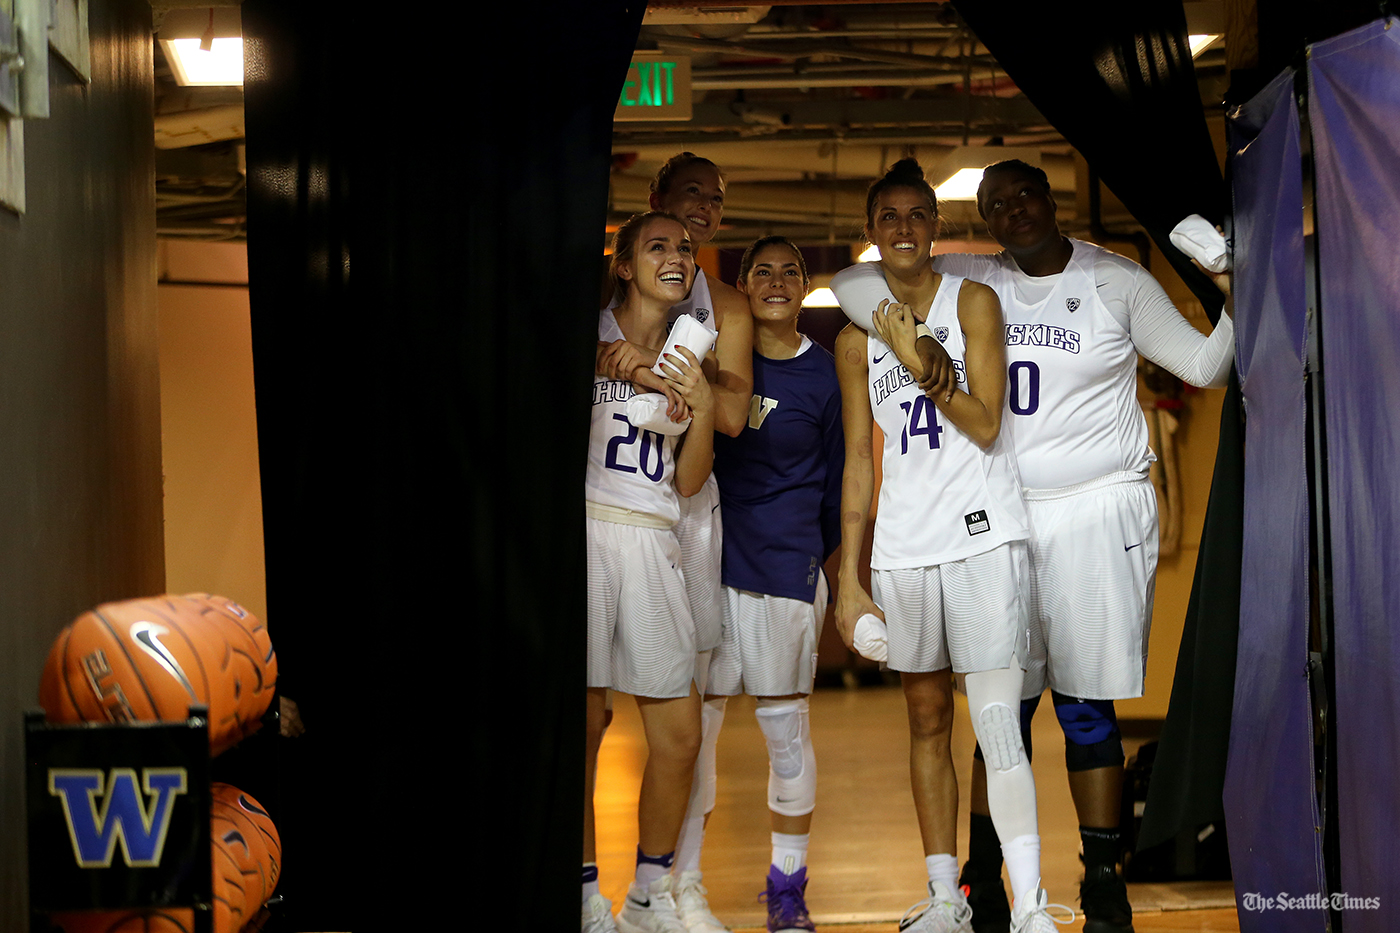 Members of the Washington Huskies women's basketball team look up at their Final Four banner being hung up prior to their game against Eastern Washington at the Hec Edmundson Pavilion on Friday, November 11, 2016.